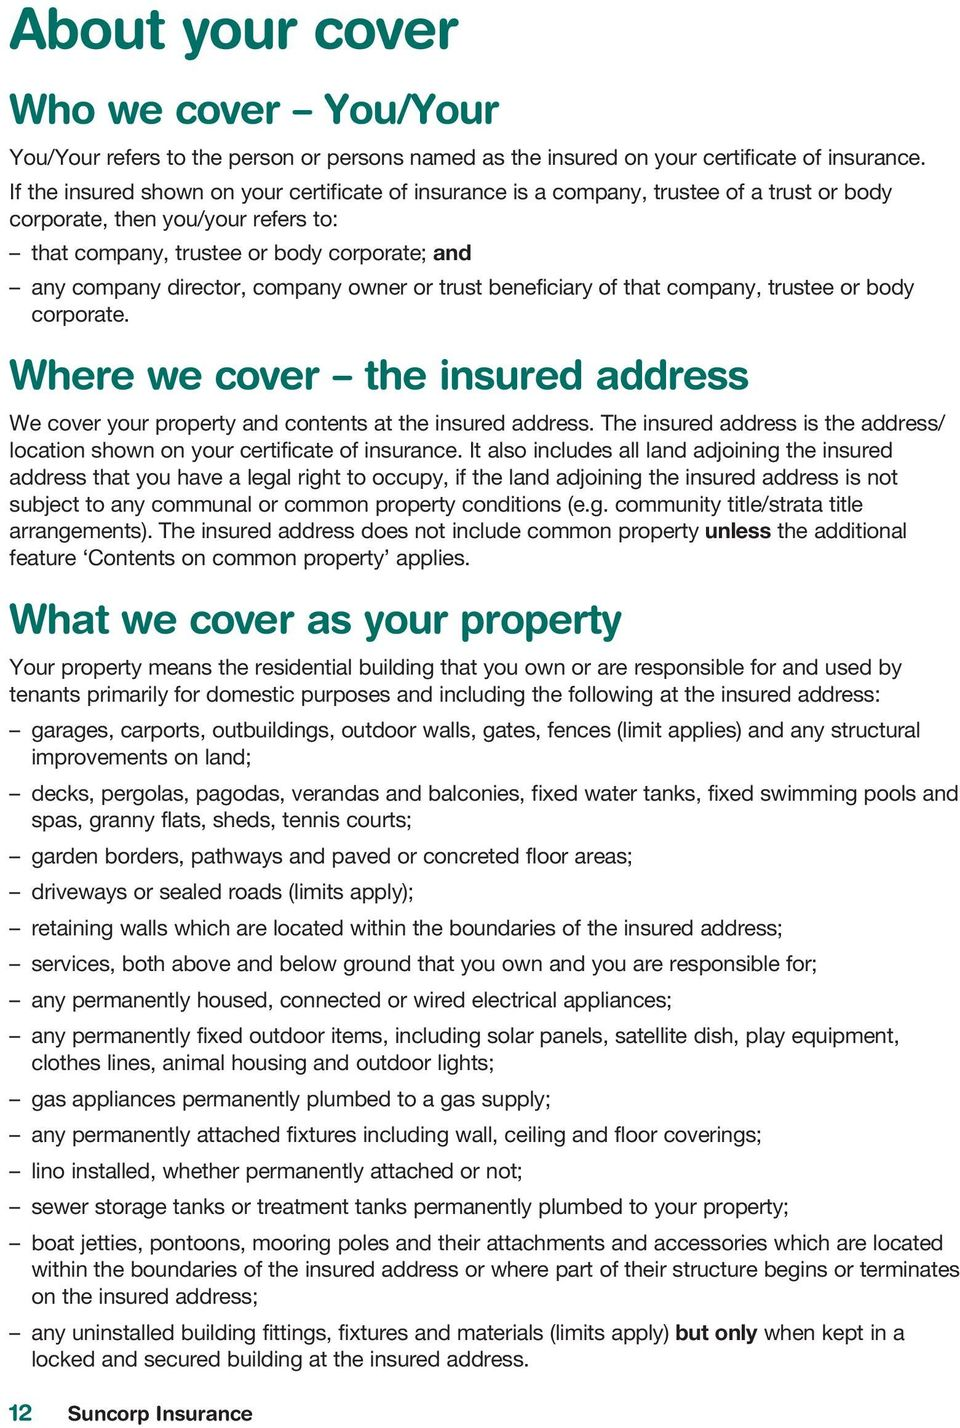 company owner or trust beneficiary of that company, trustee or body corporate. Where we cover the insured address your property and contents at the insured address.